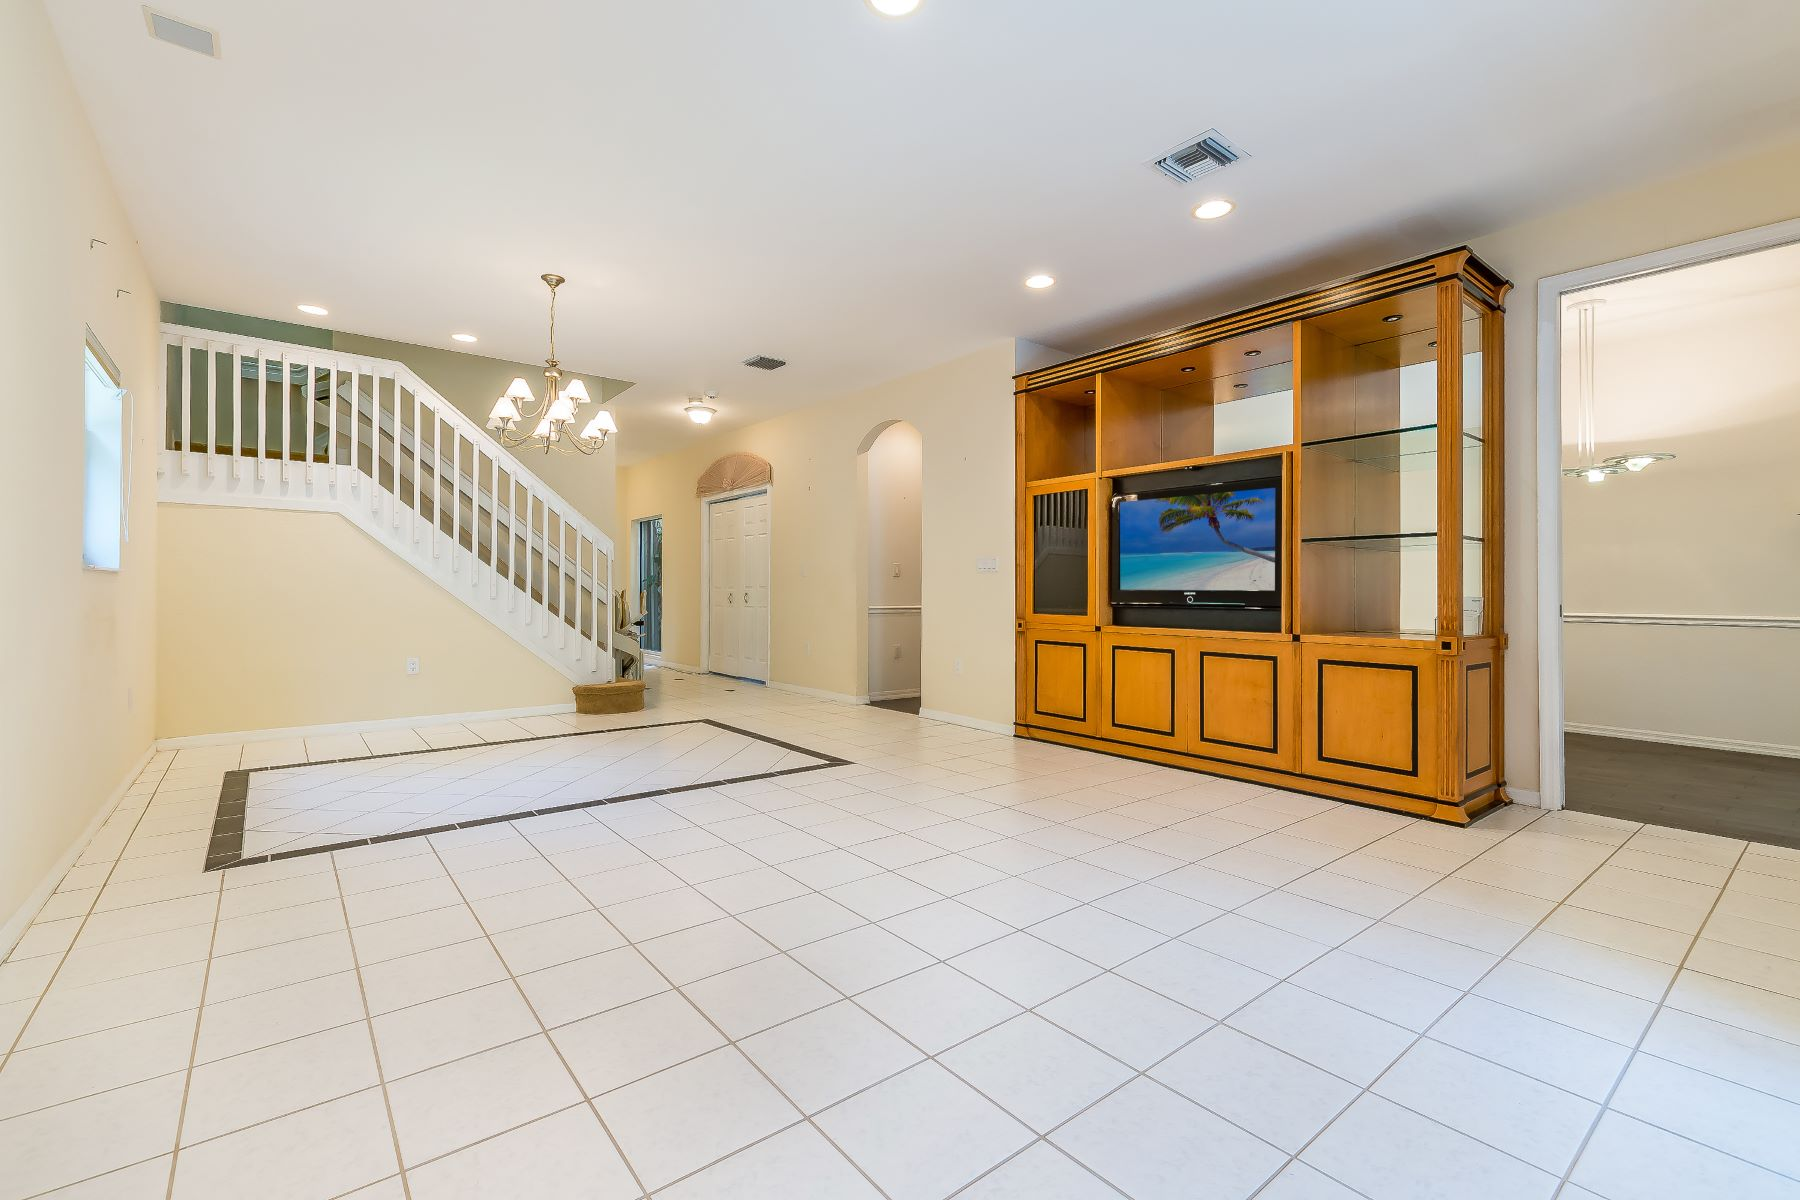 townhouses for Active at 8531 Sw 139th Ter Palmetto Bay, Florida 33158 United States